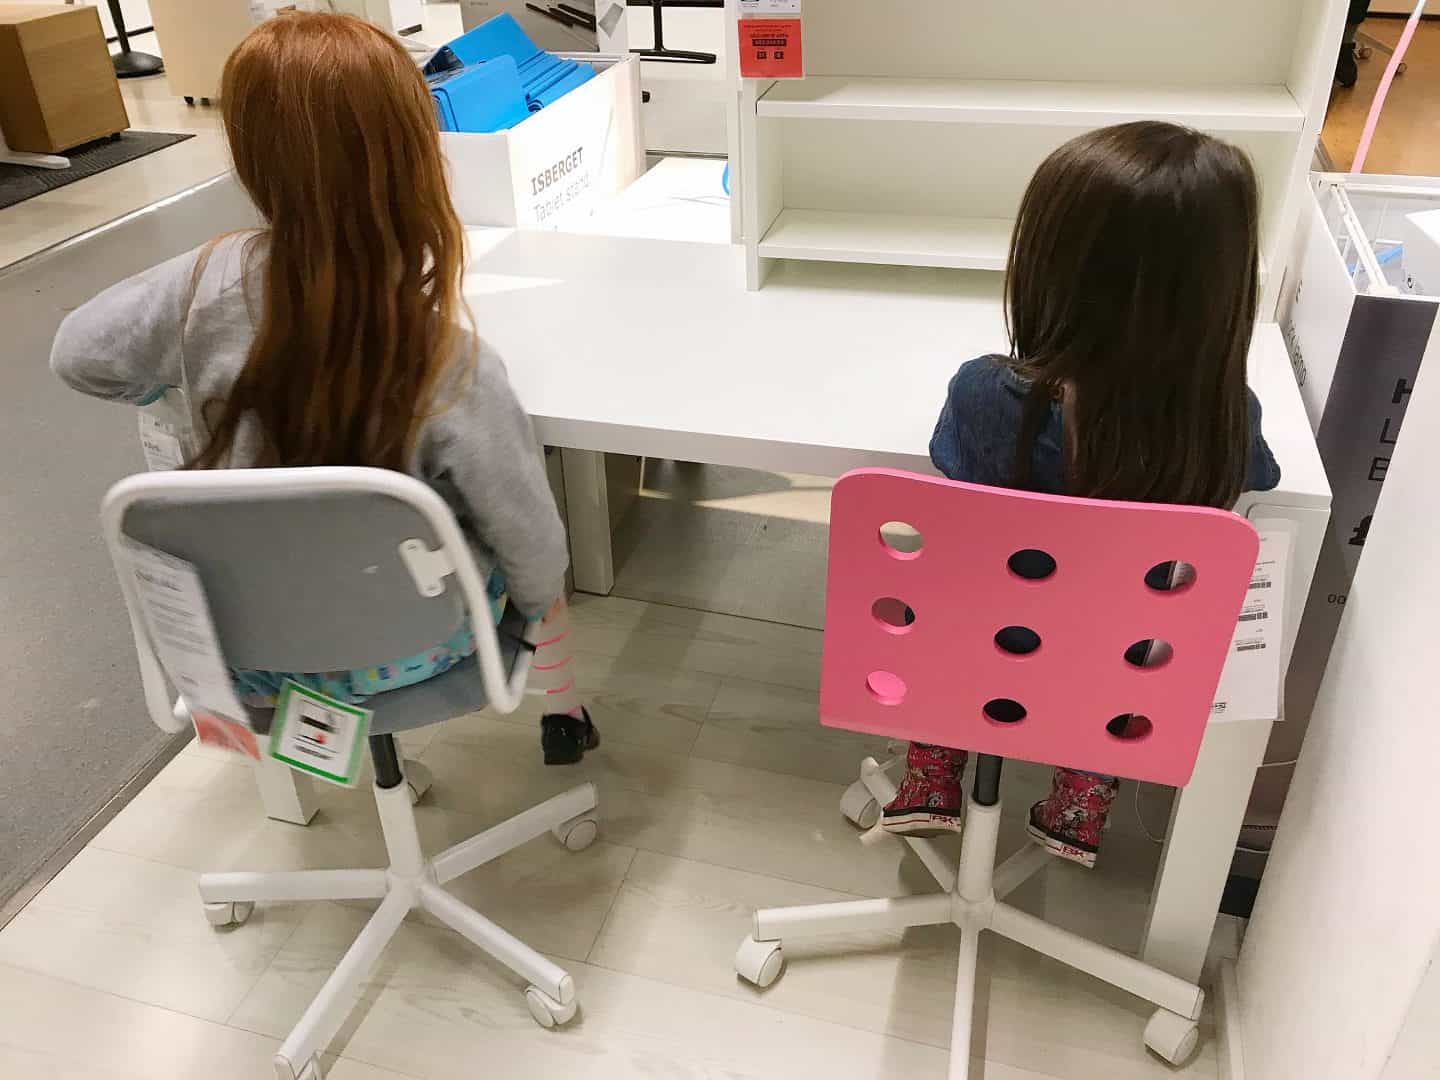 Ikea Pahl Desk Ikea Pahl Desk With Two Chairs | Pinkscharming